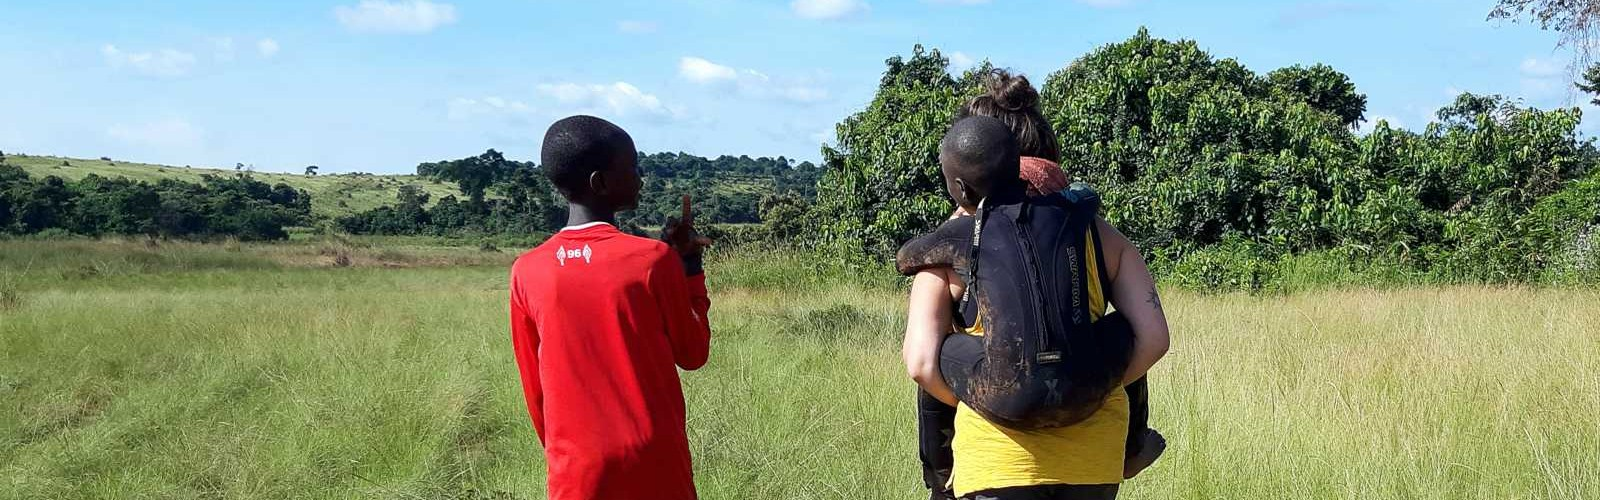 Why my Internship Placement in Uganda was the Time of my Life